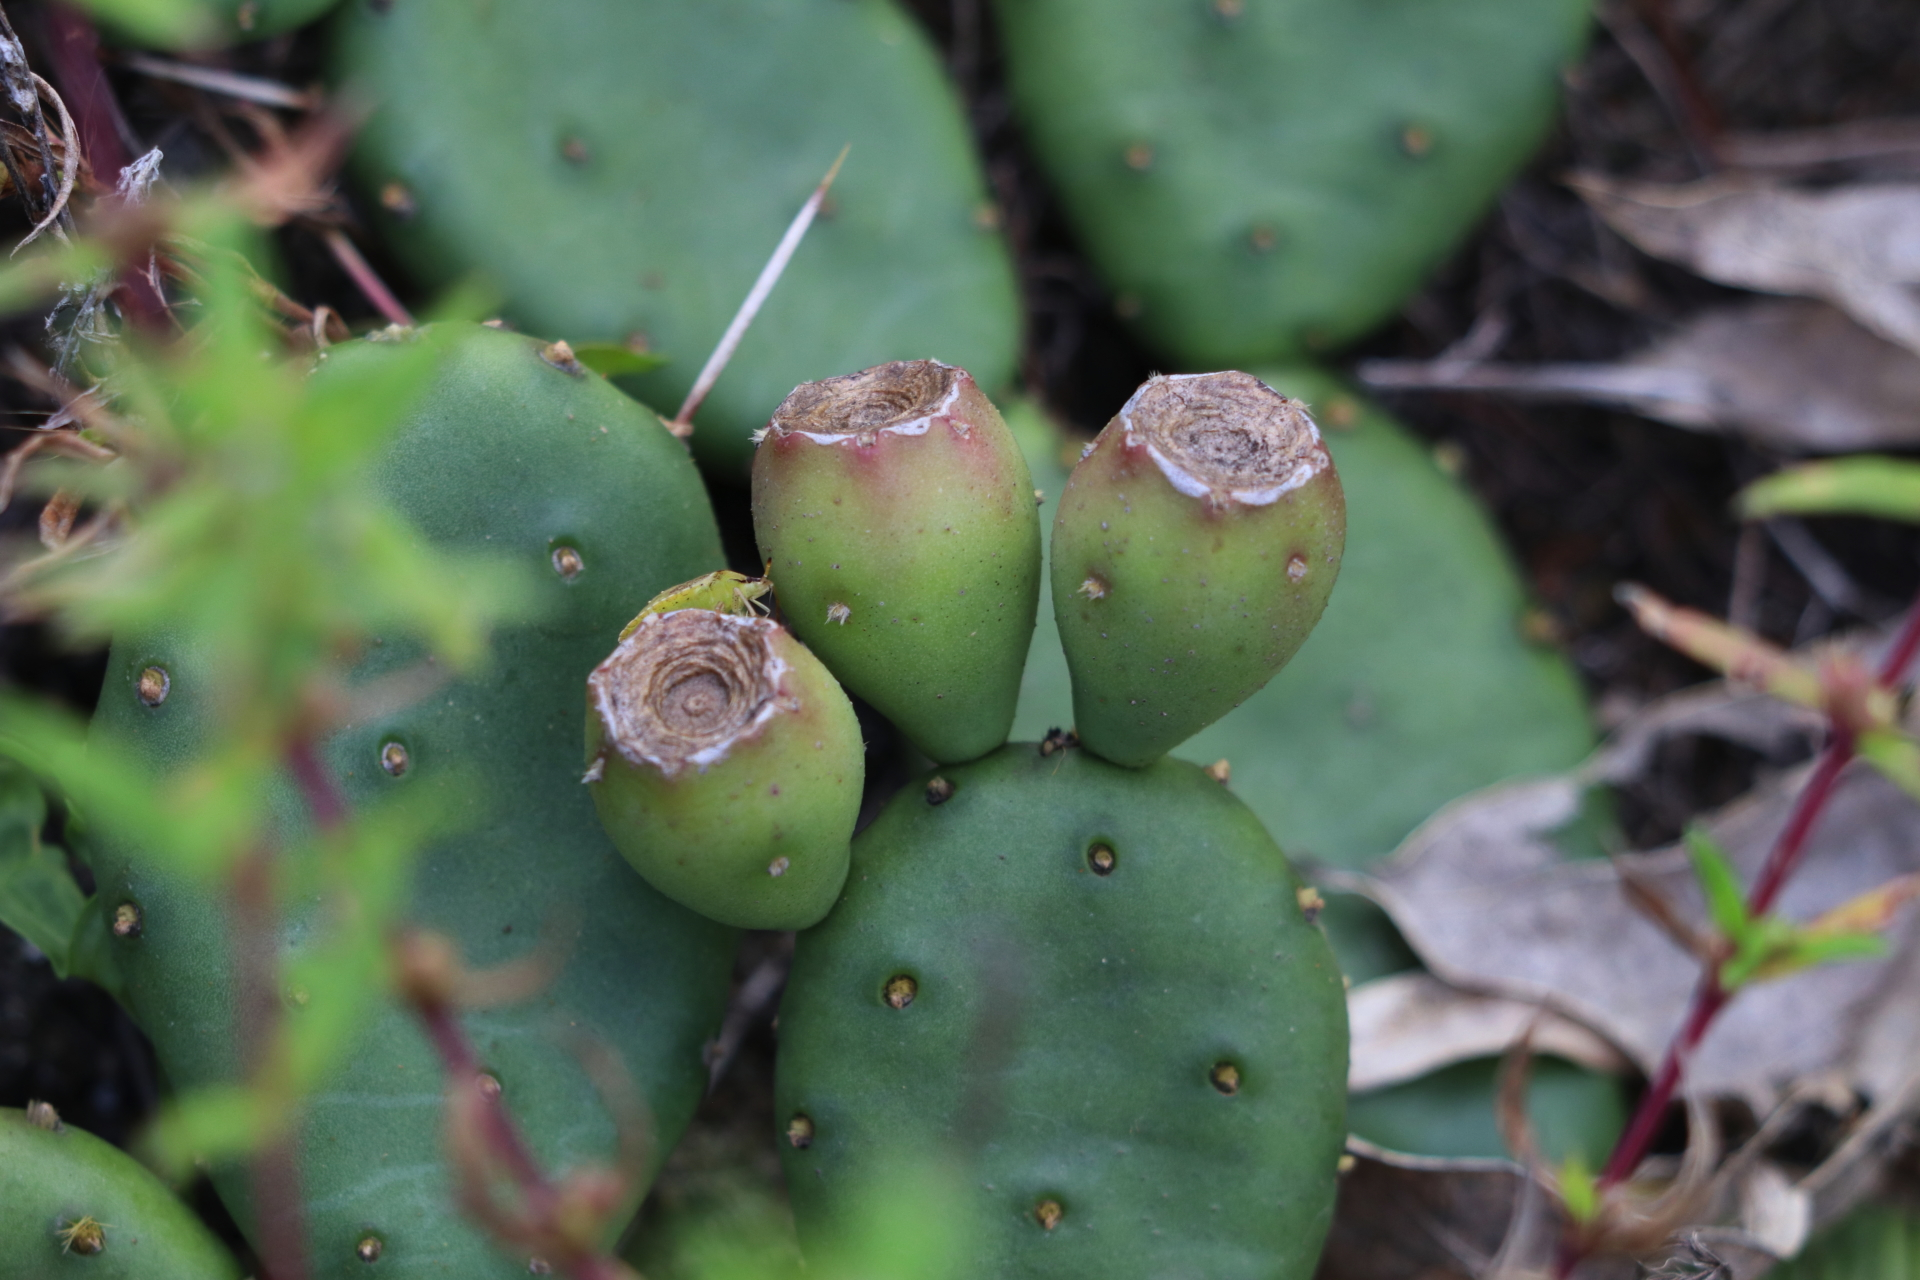 Cactus buds in Williamsburg VA